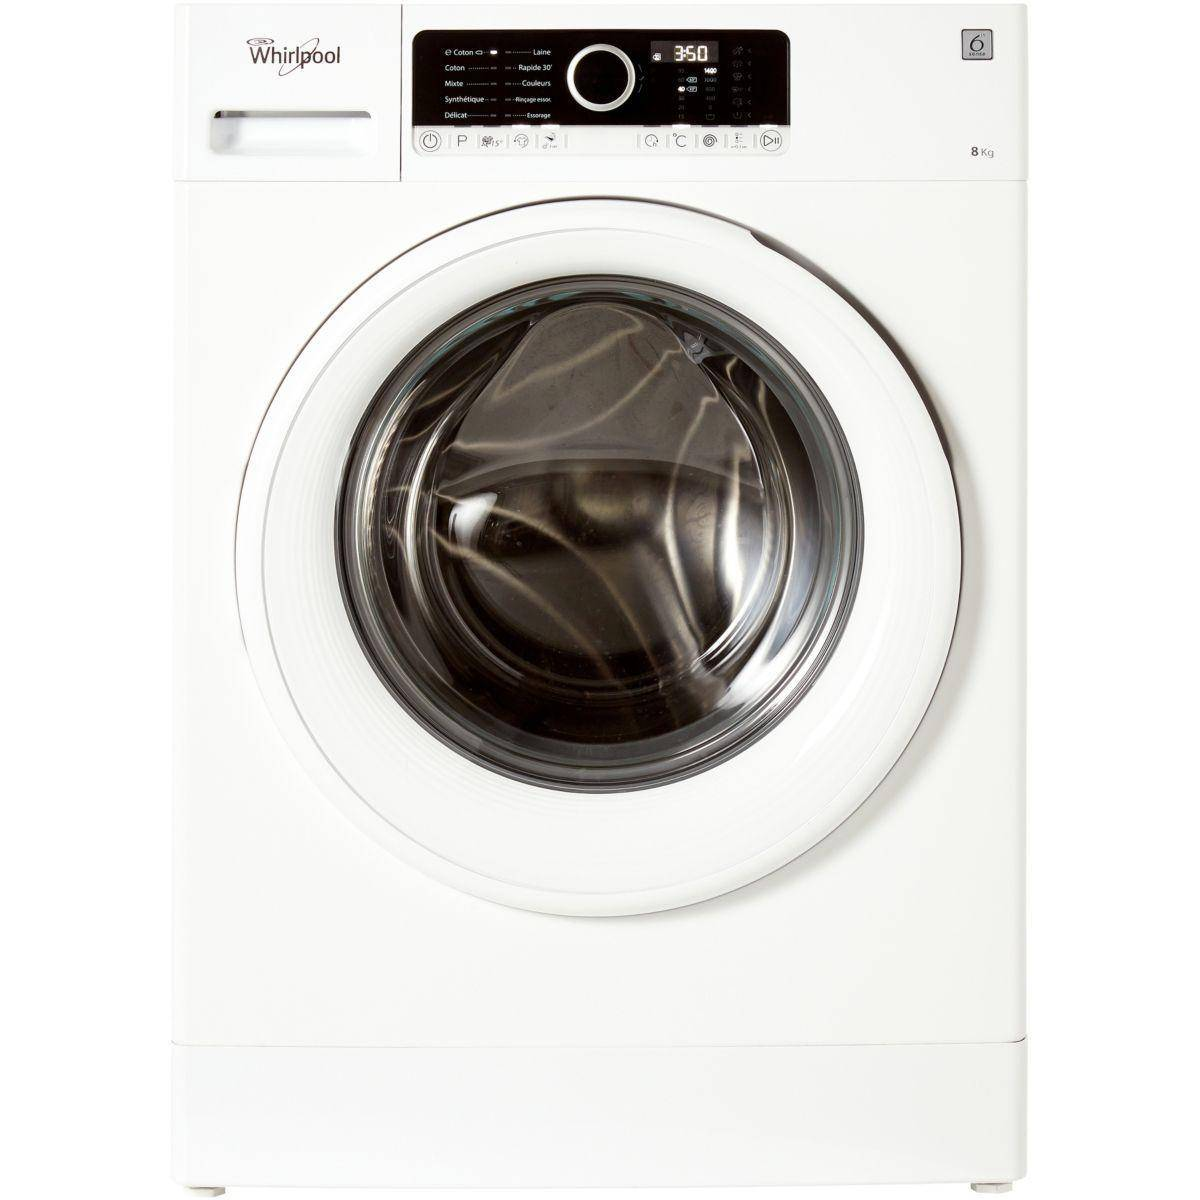 Whirlpool Lave-linge frontal WHIRLPOOL FSCR 80413 Reconditionné à neuf